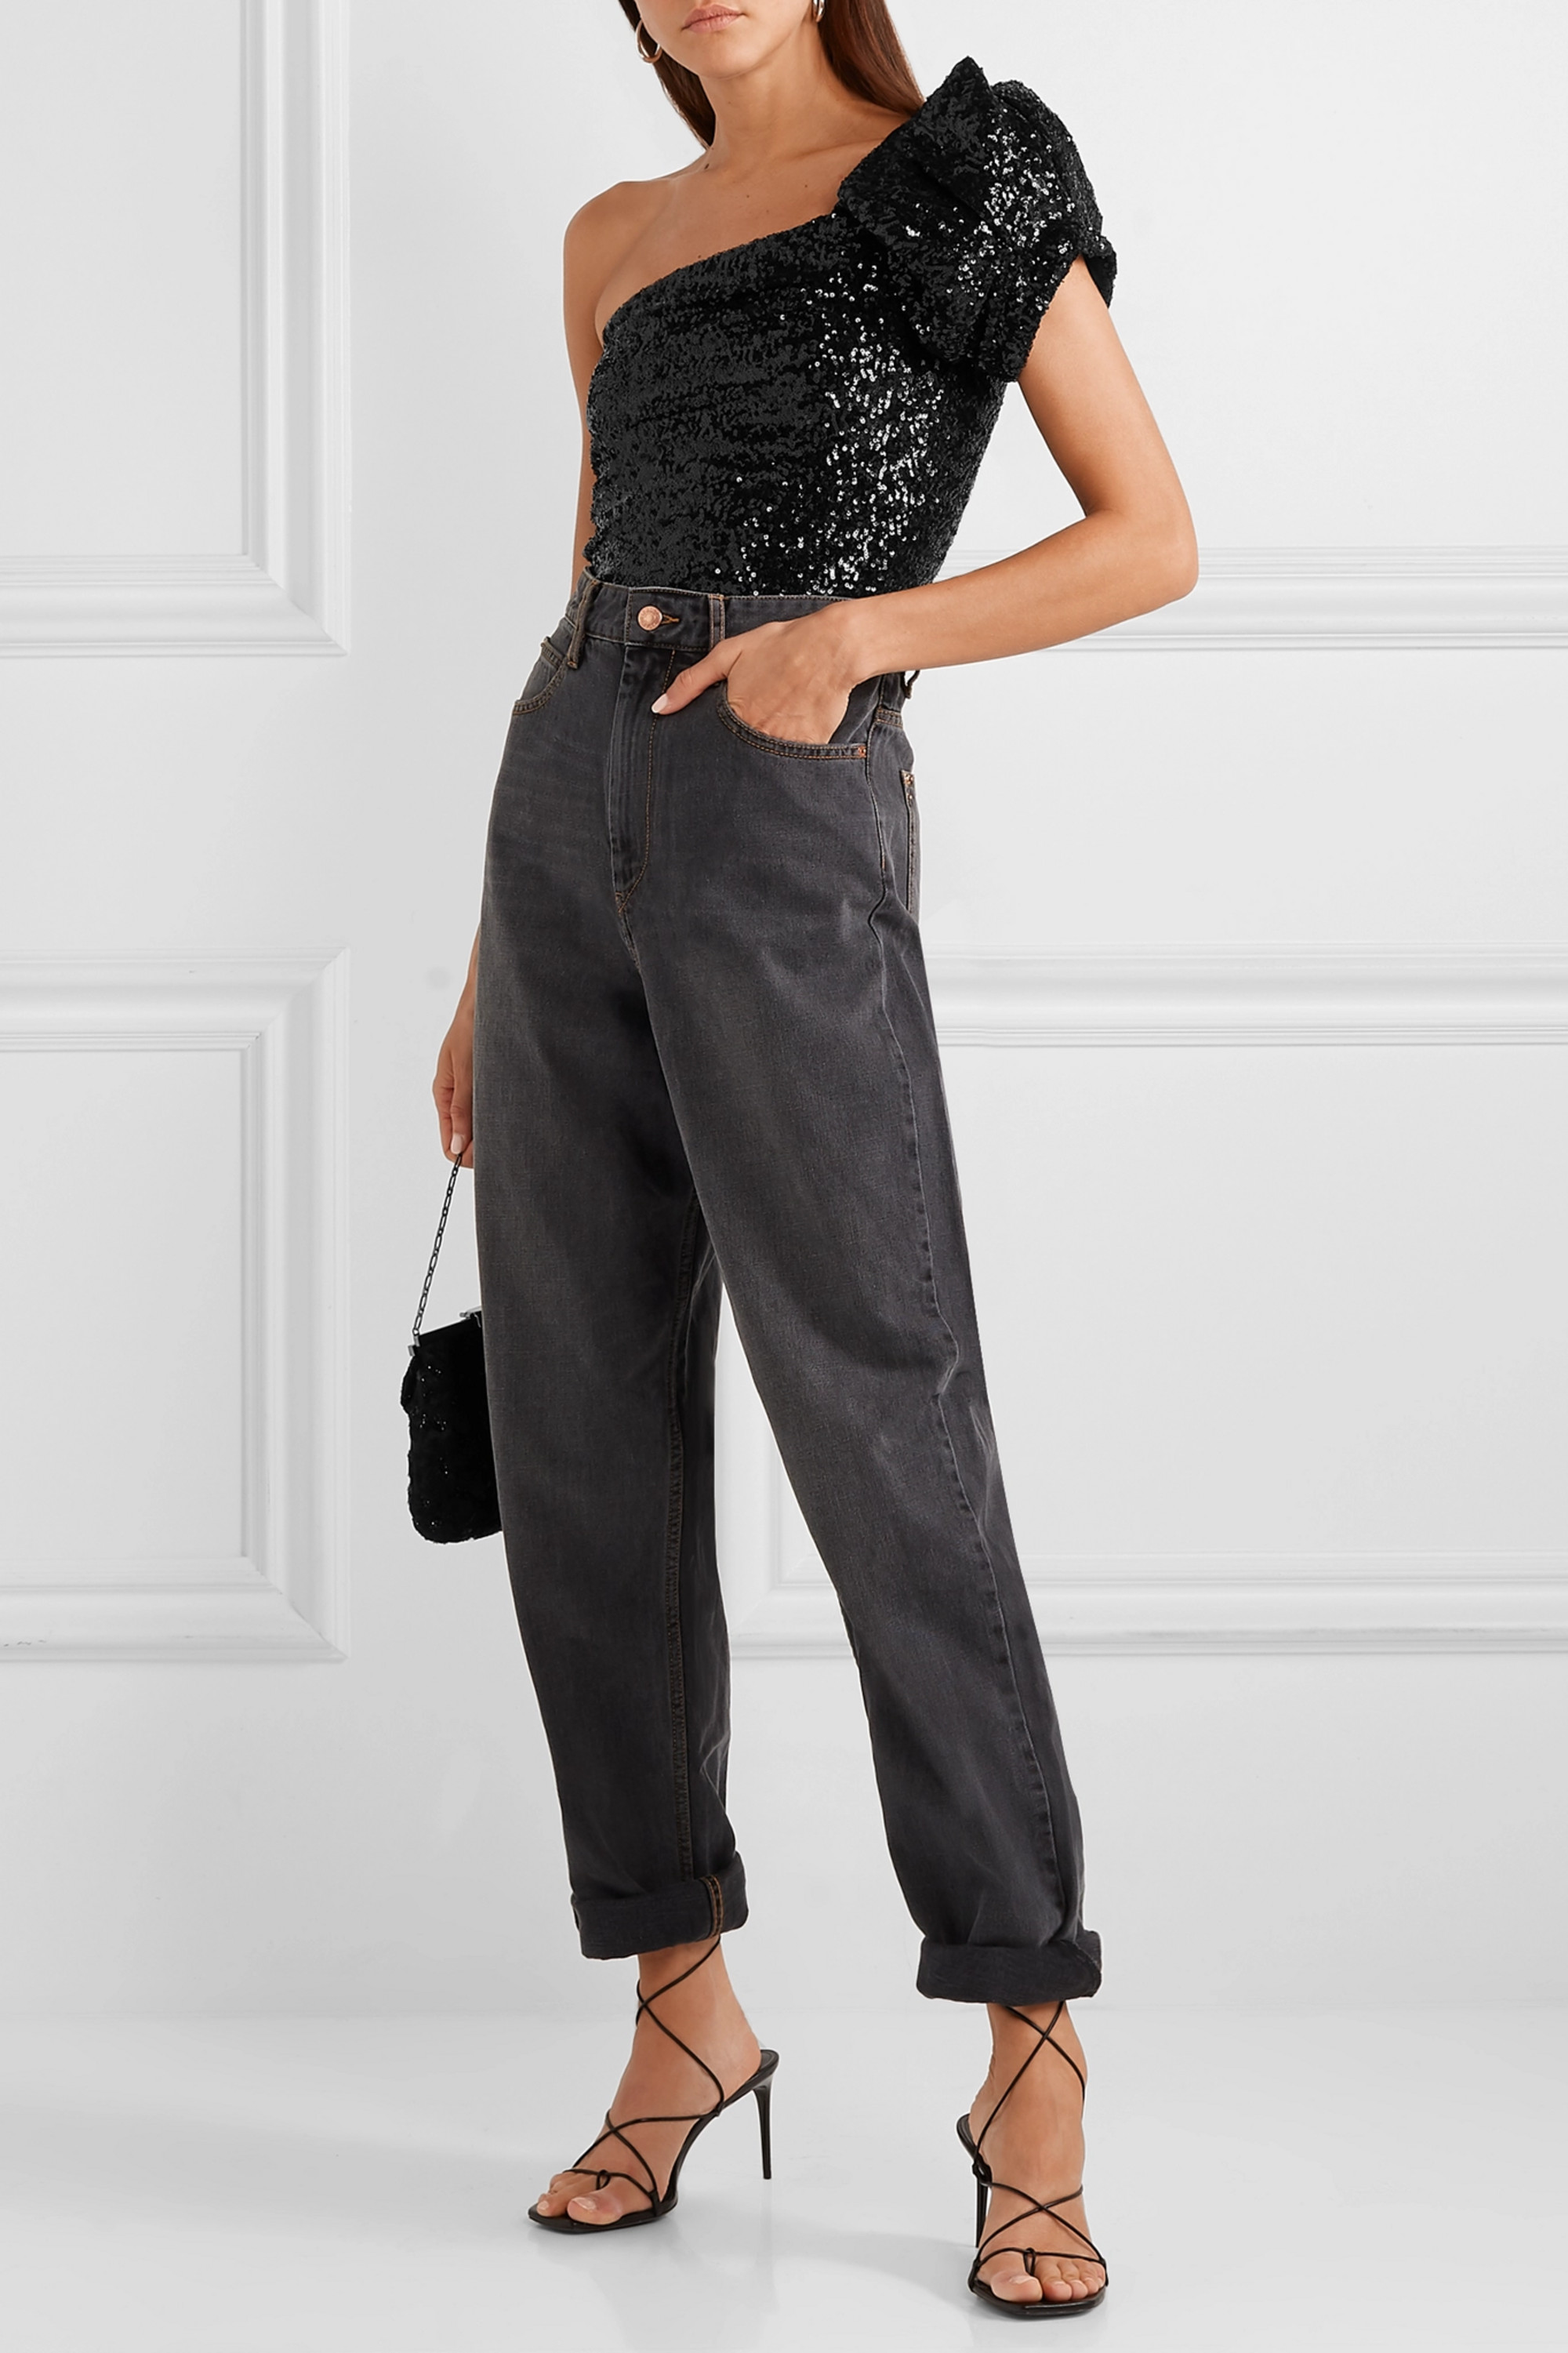 Isabel Marant Ocha one-shoulder sequined stretch-tulle top